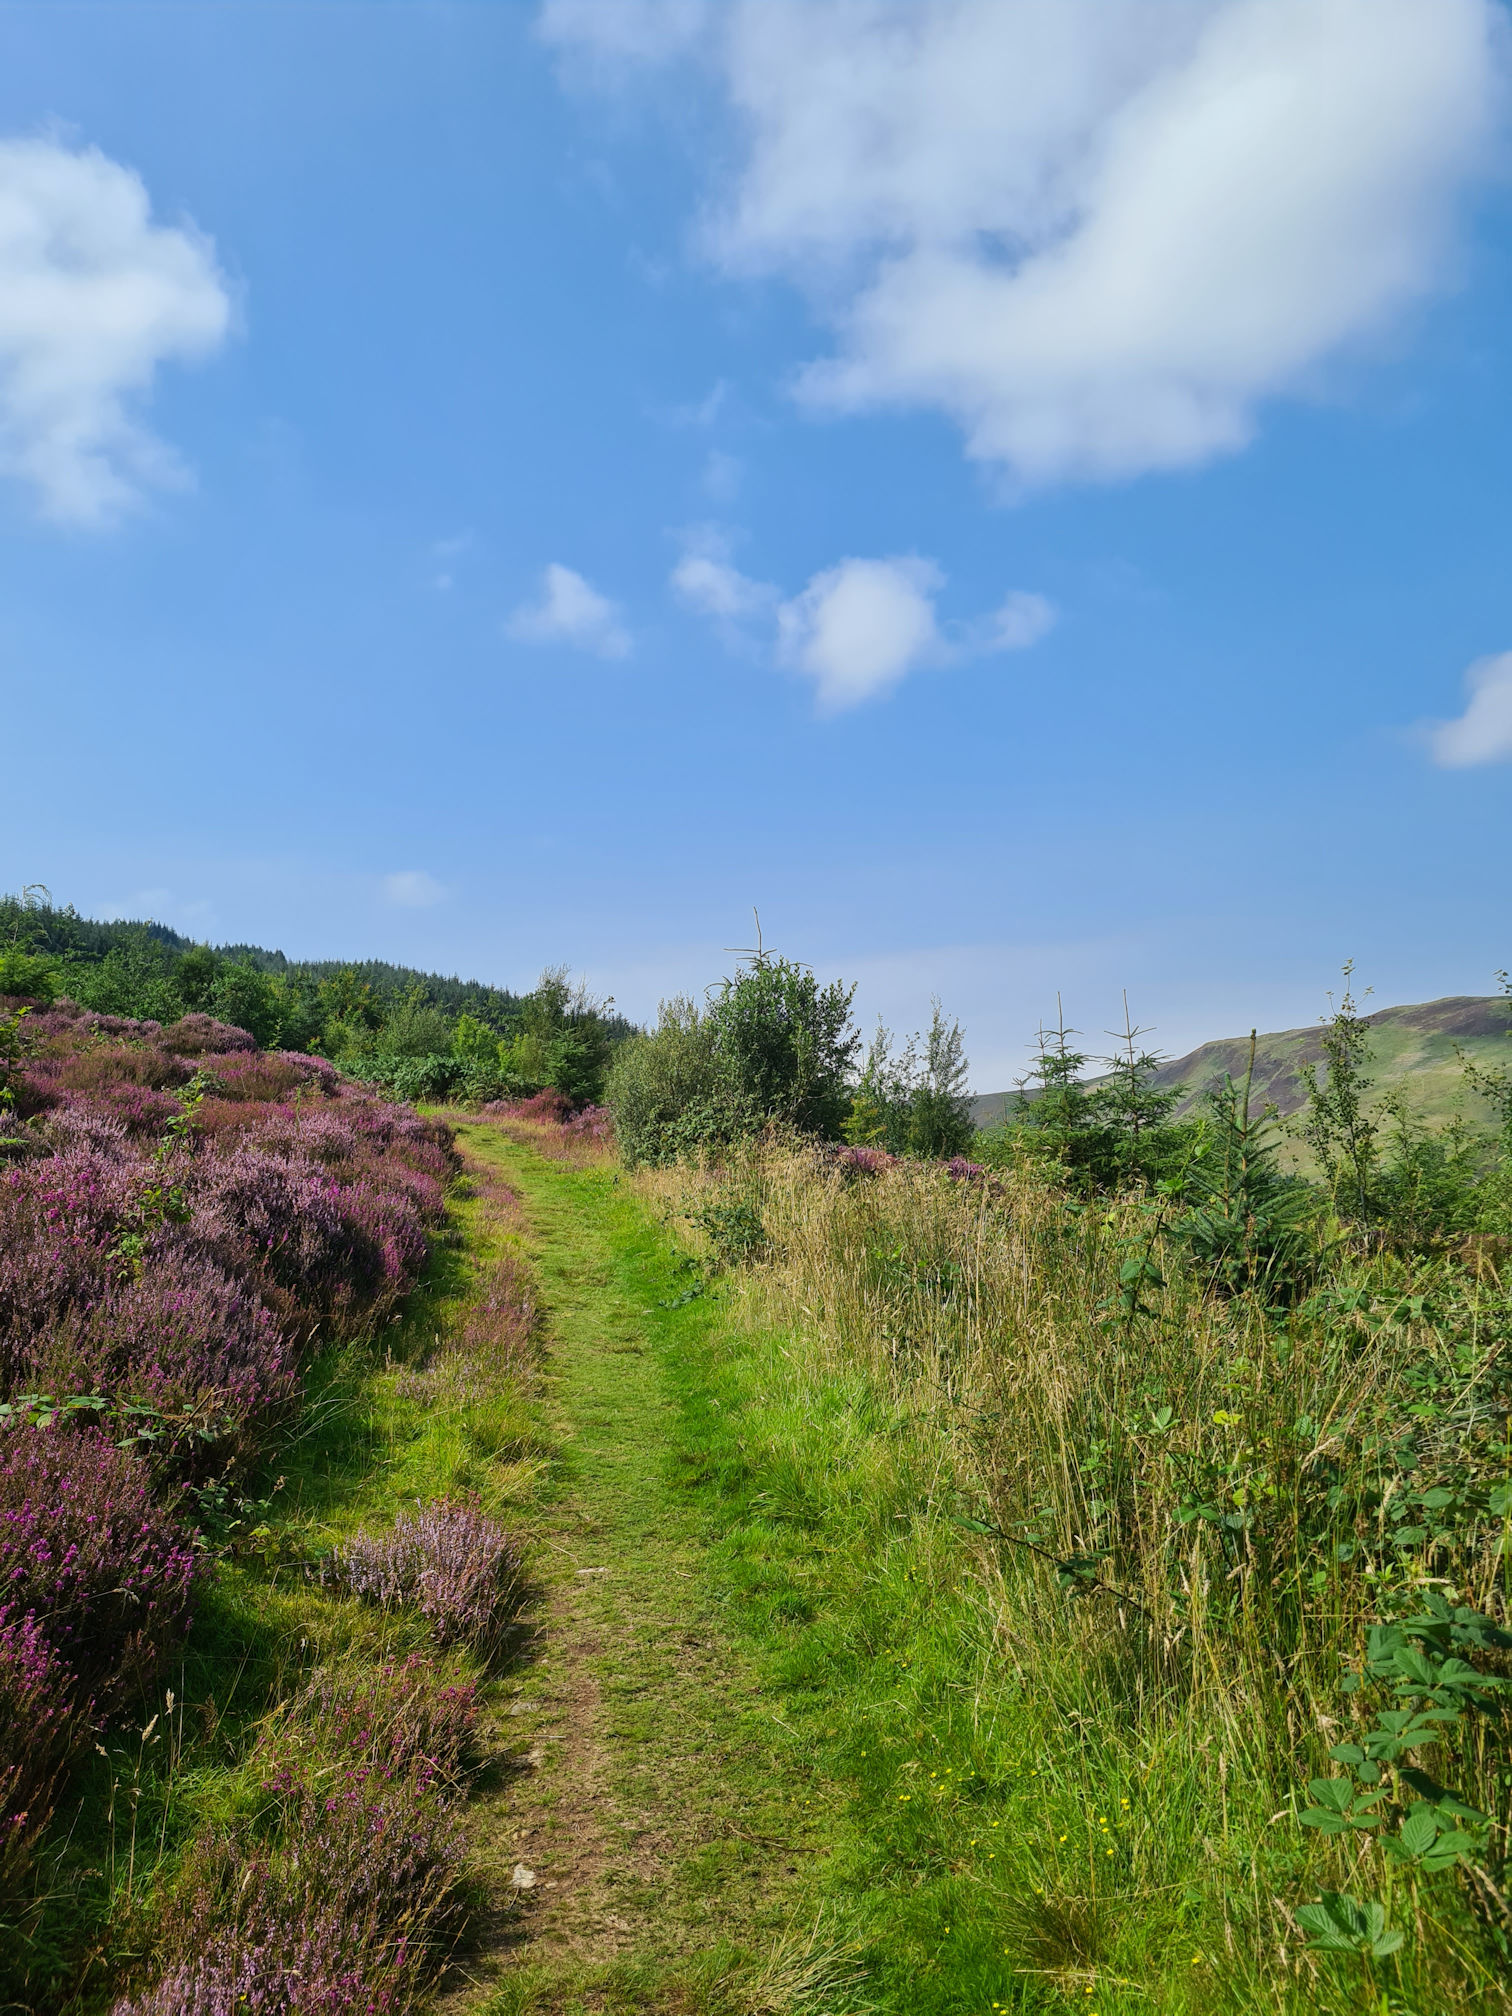 Grassy uphill path and purple heather, blue sky and white clouds